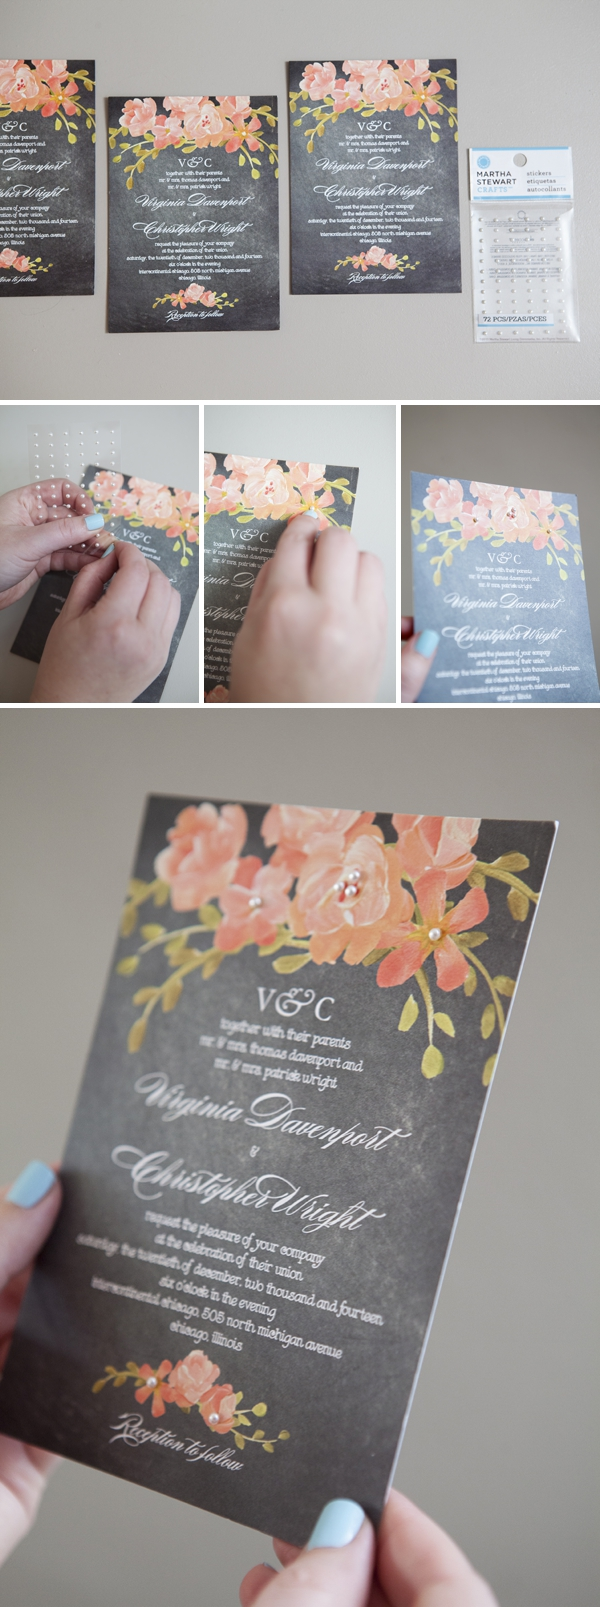 How To Embellish Store Bought Wedding Invitations